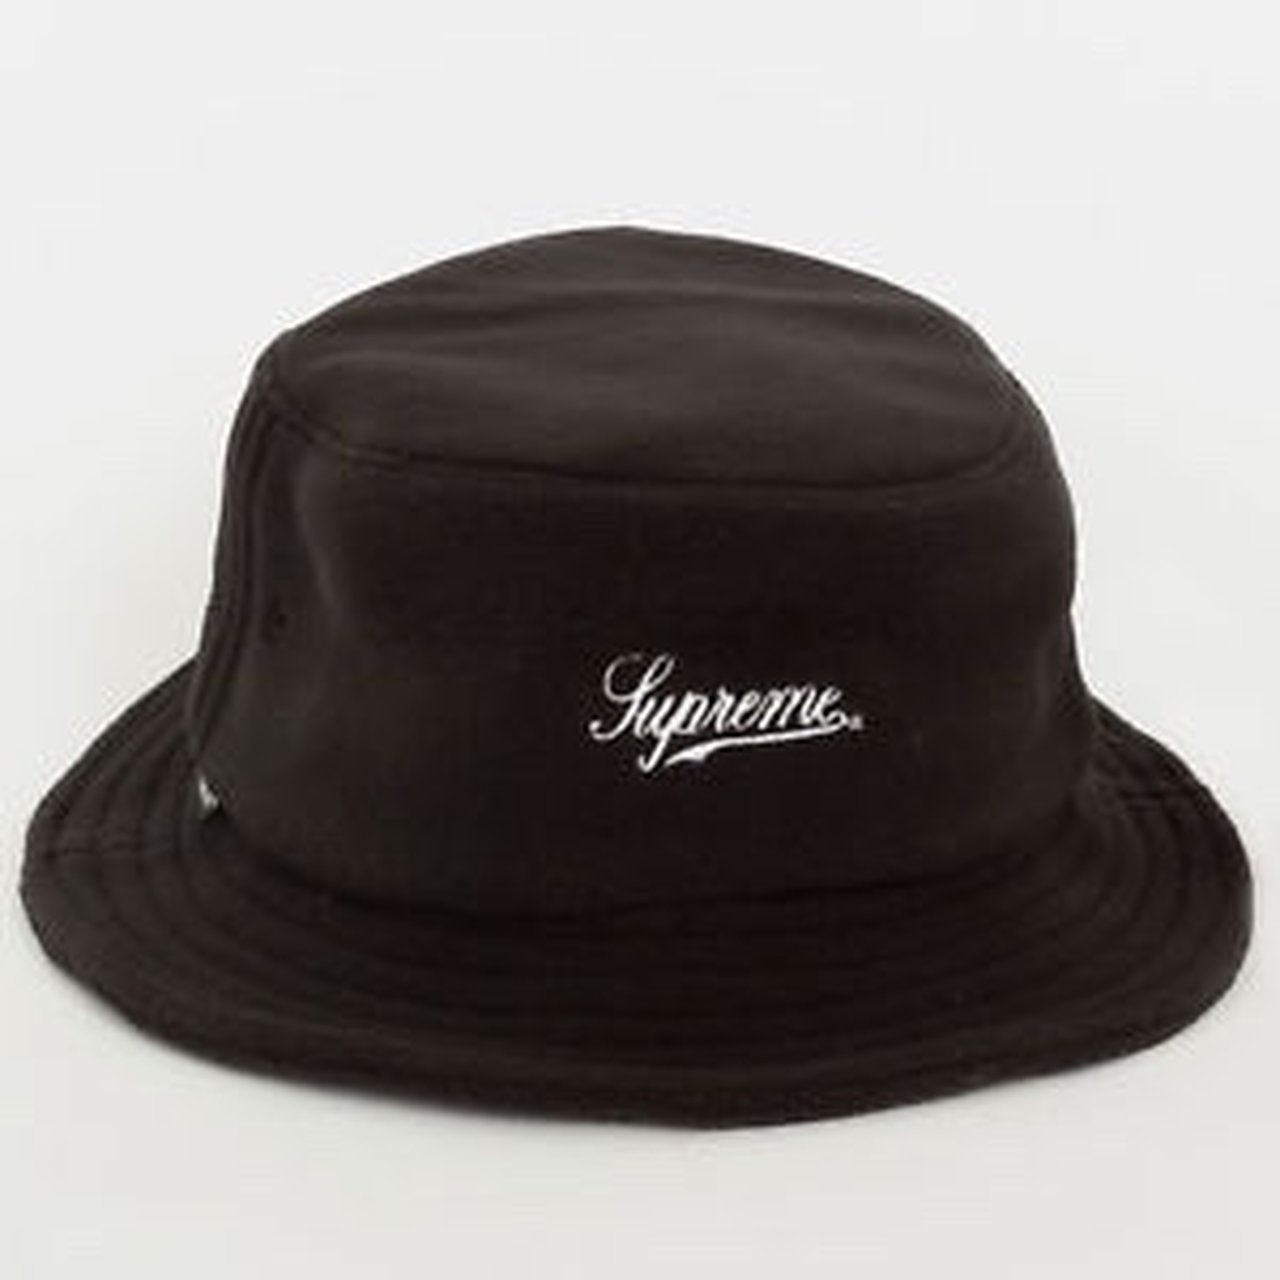 0a63e738ad2 Supreme F W 2017 Polartec fleece bucket hat. Black